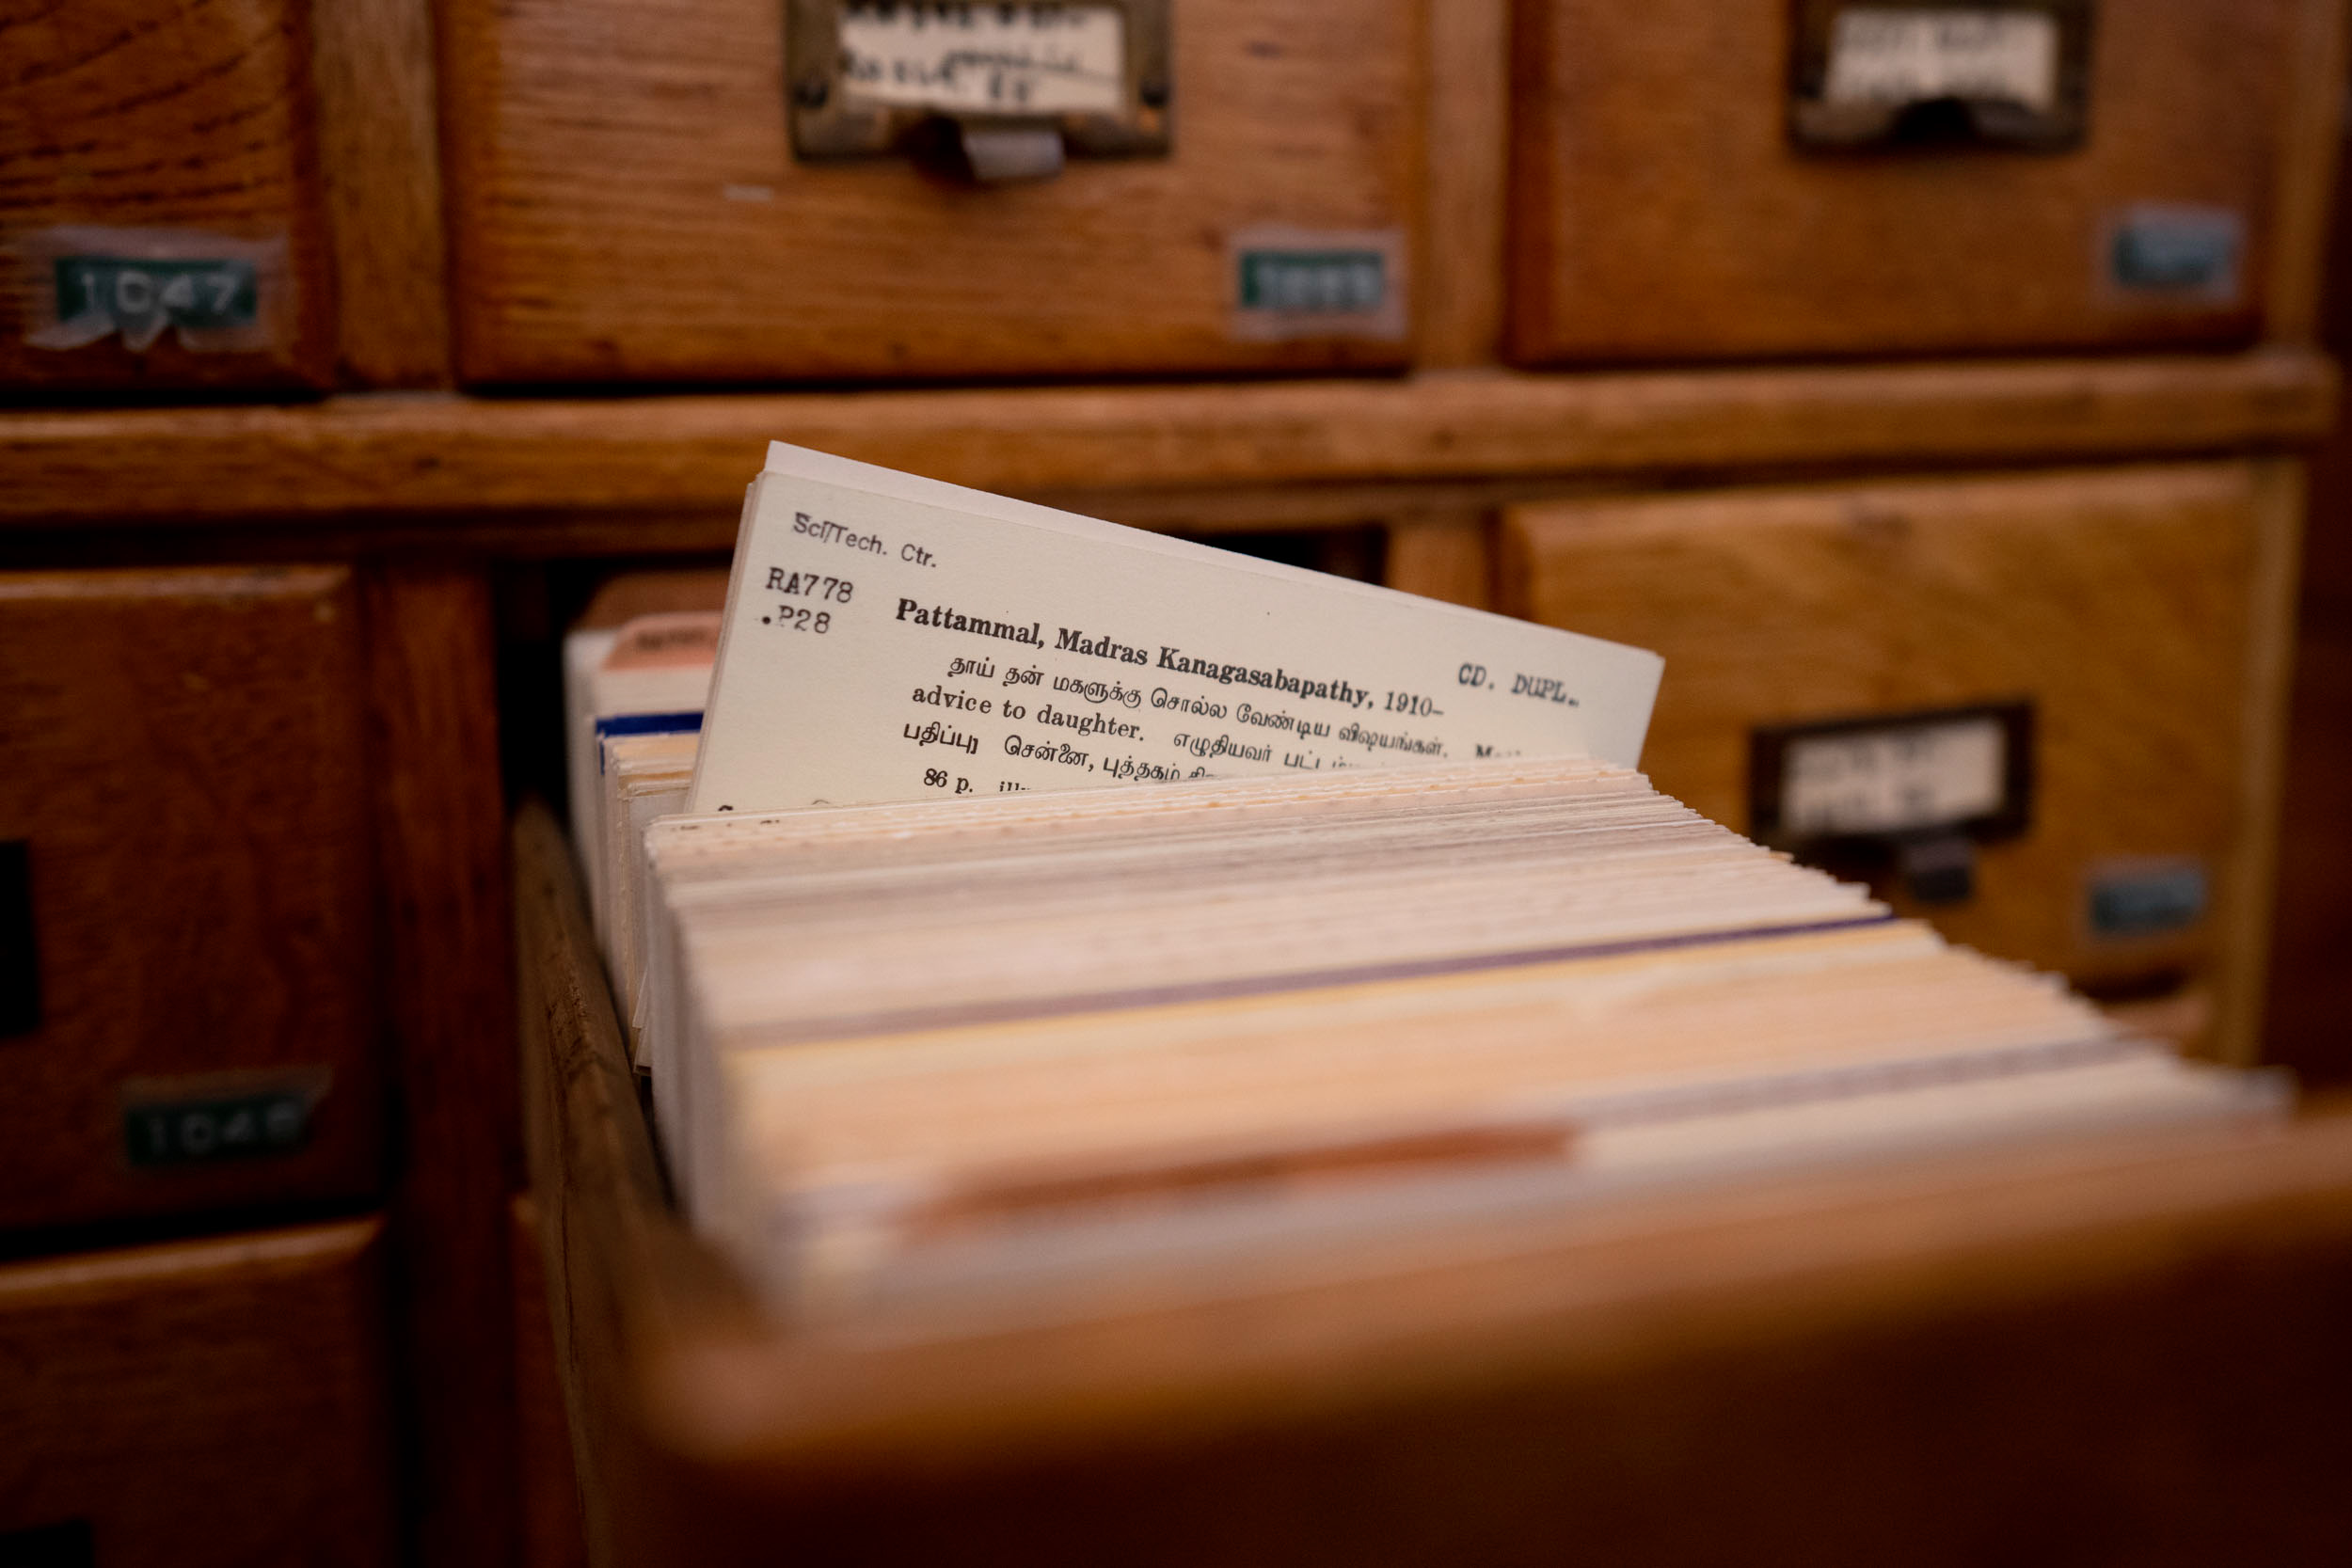 Index card in a wooden drawer.